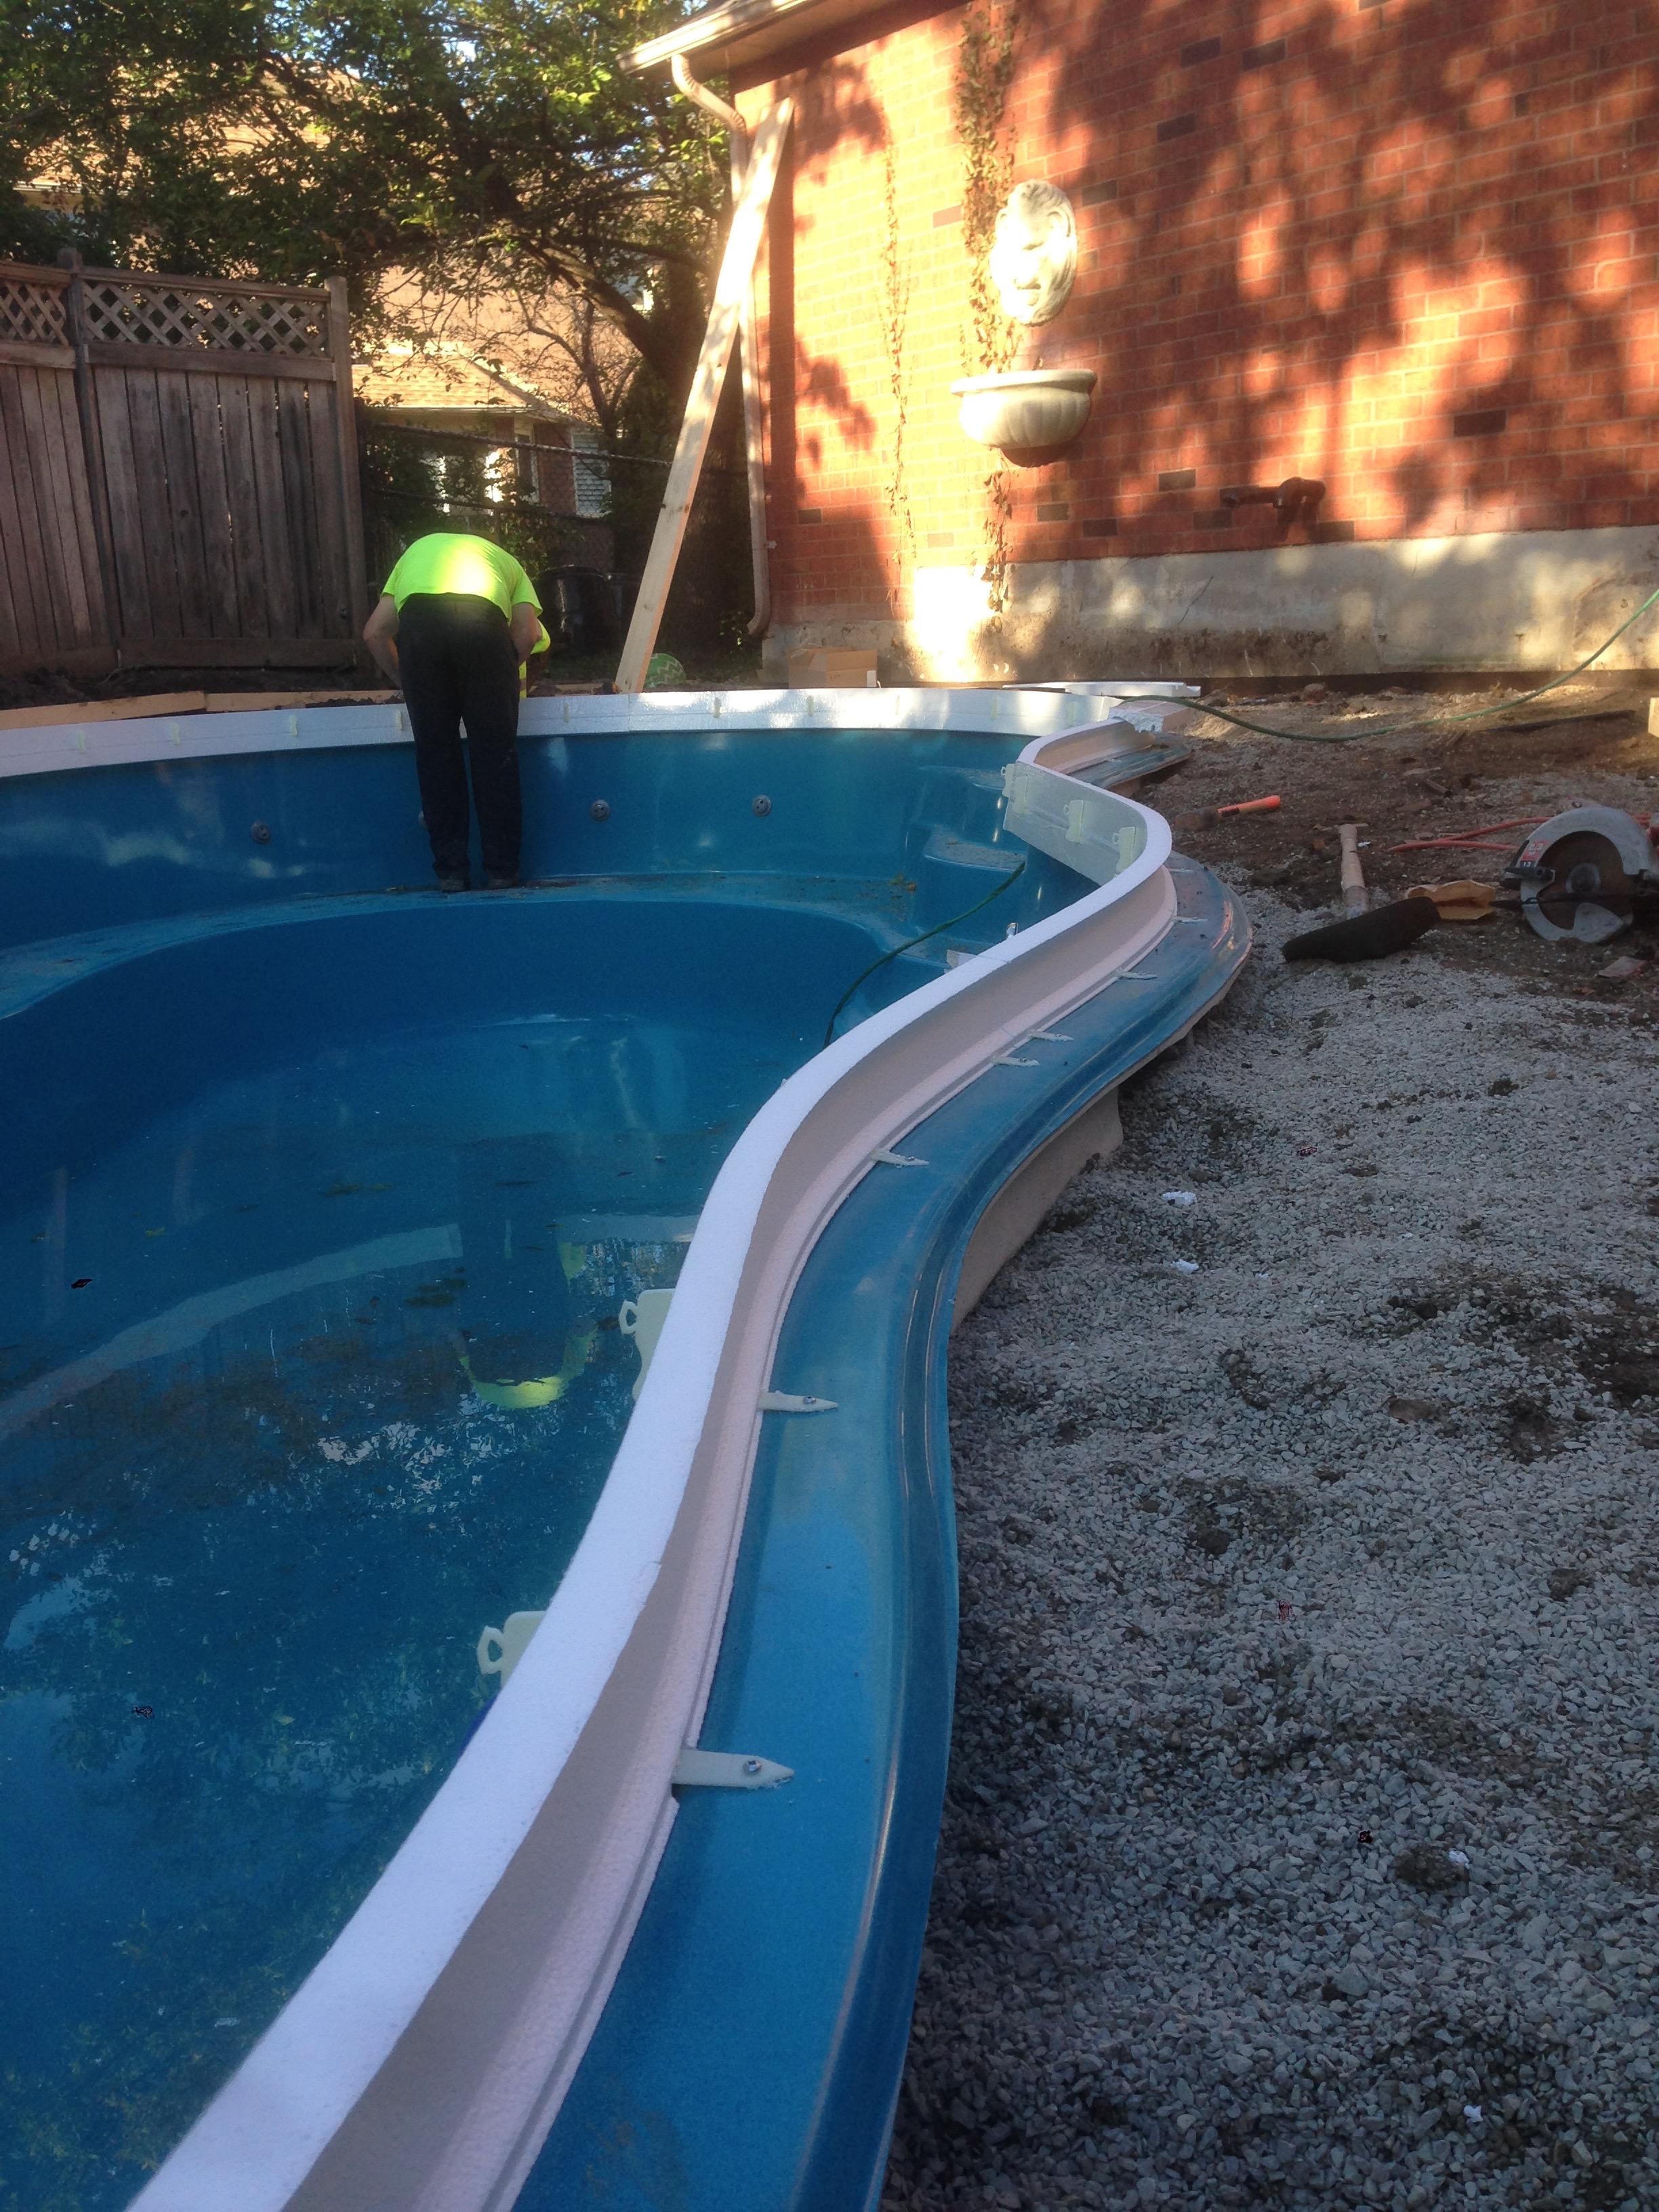 Icc for fibreglass and gunite concrete pools with tile Fibreglass pools vs concrete pools